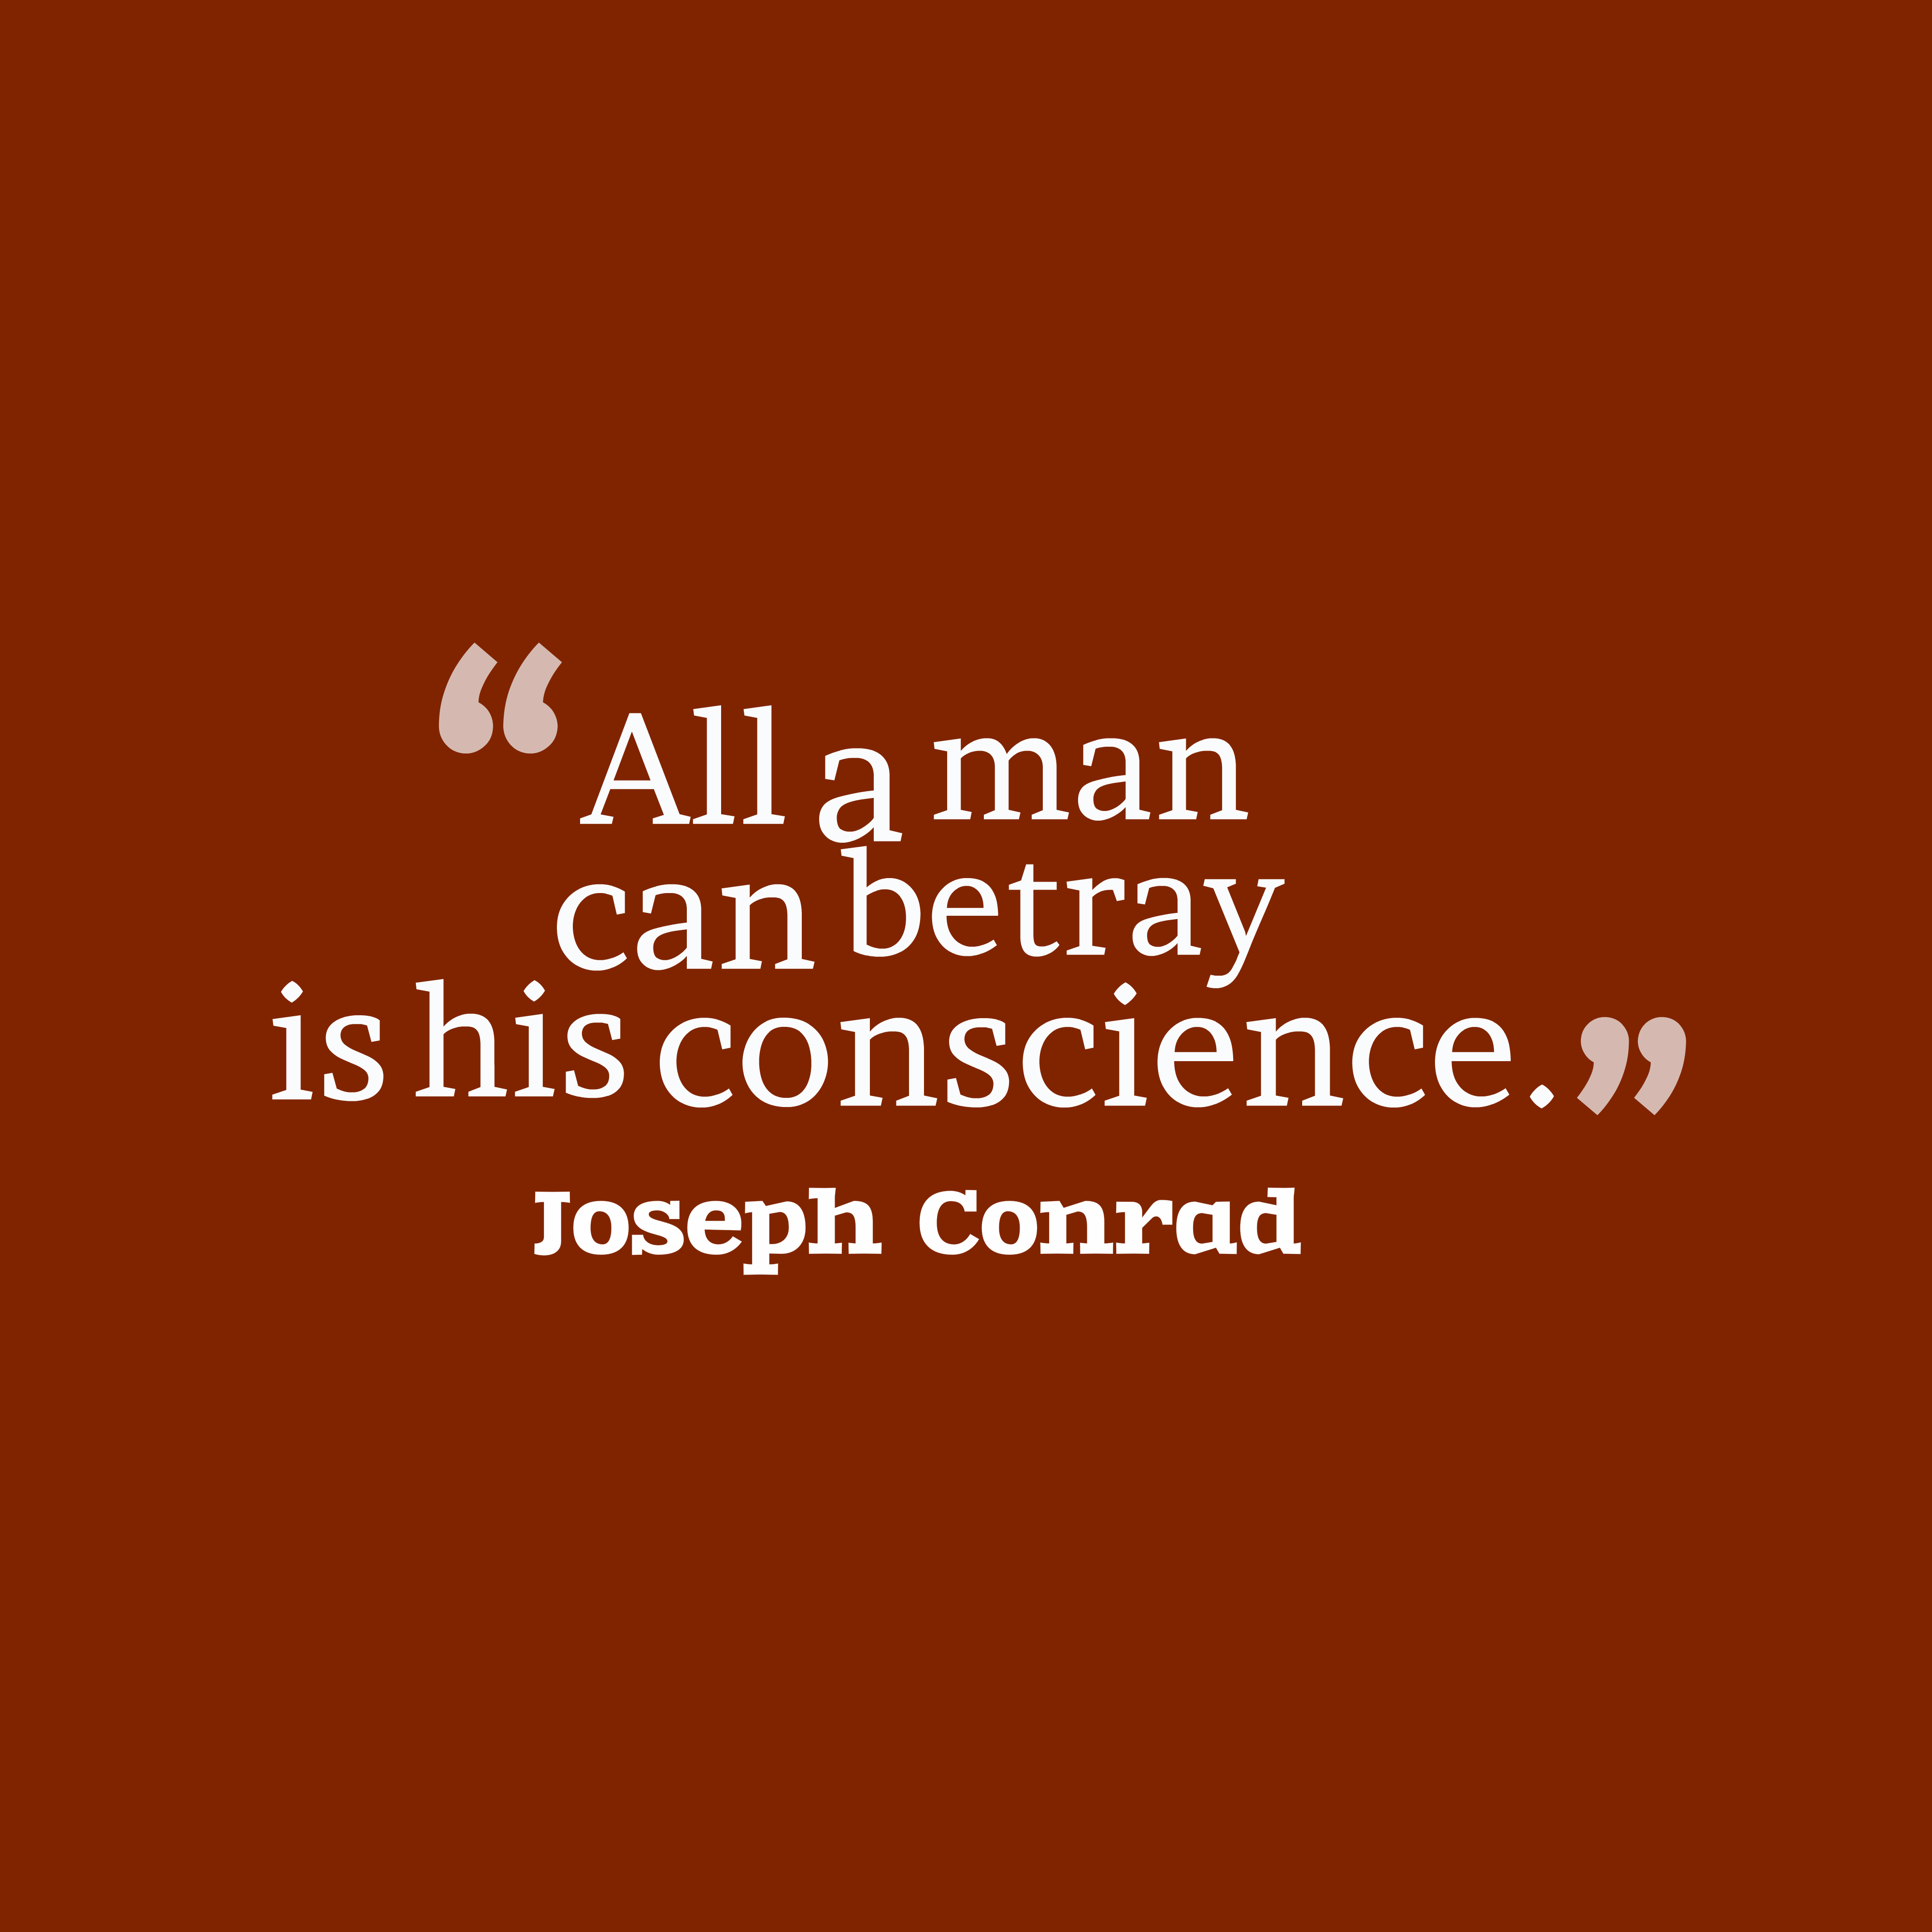 Quotes image of All a man can betray is his conscience.